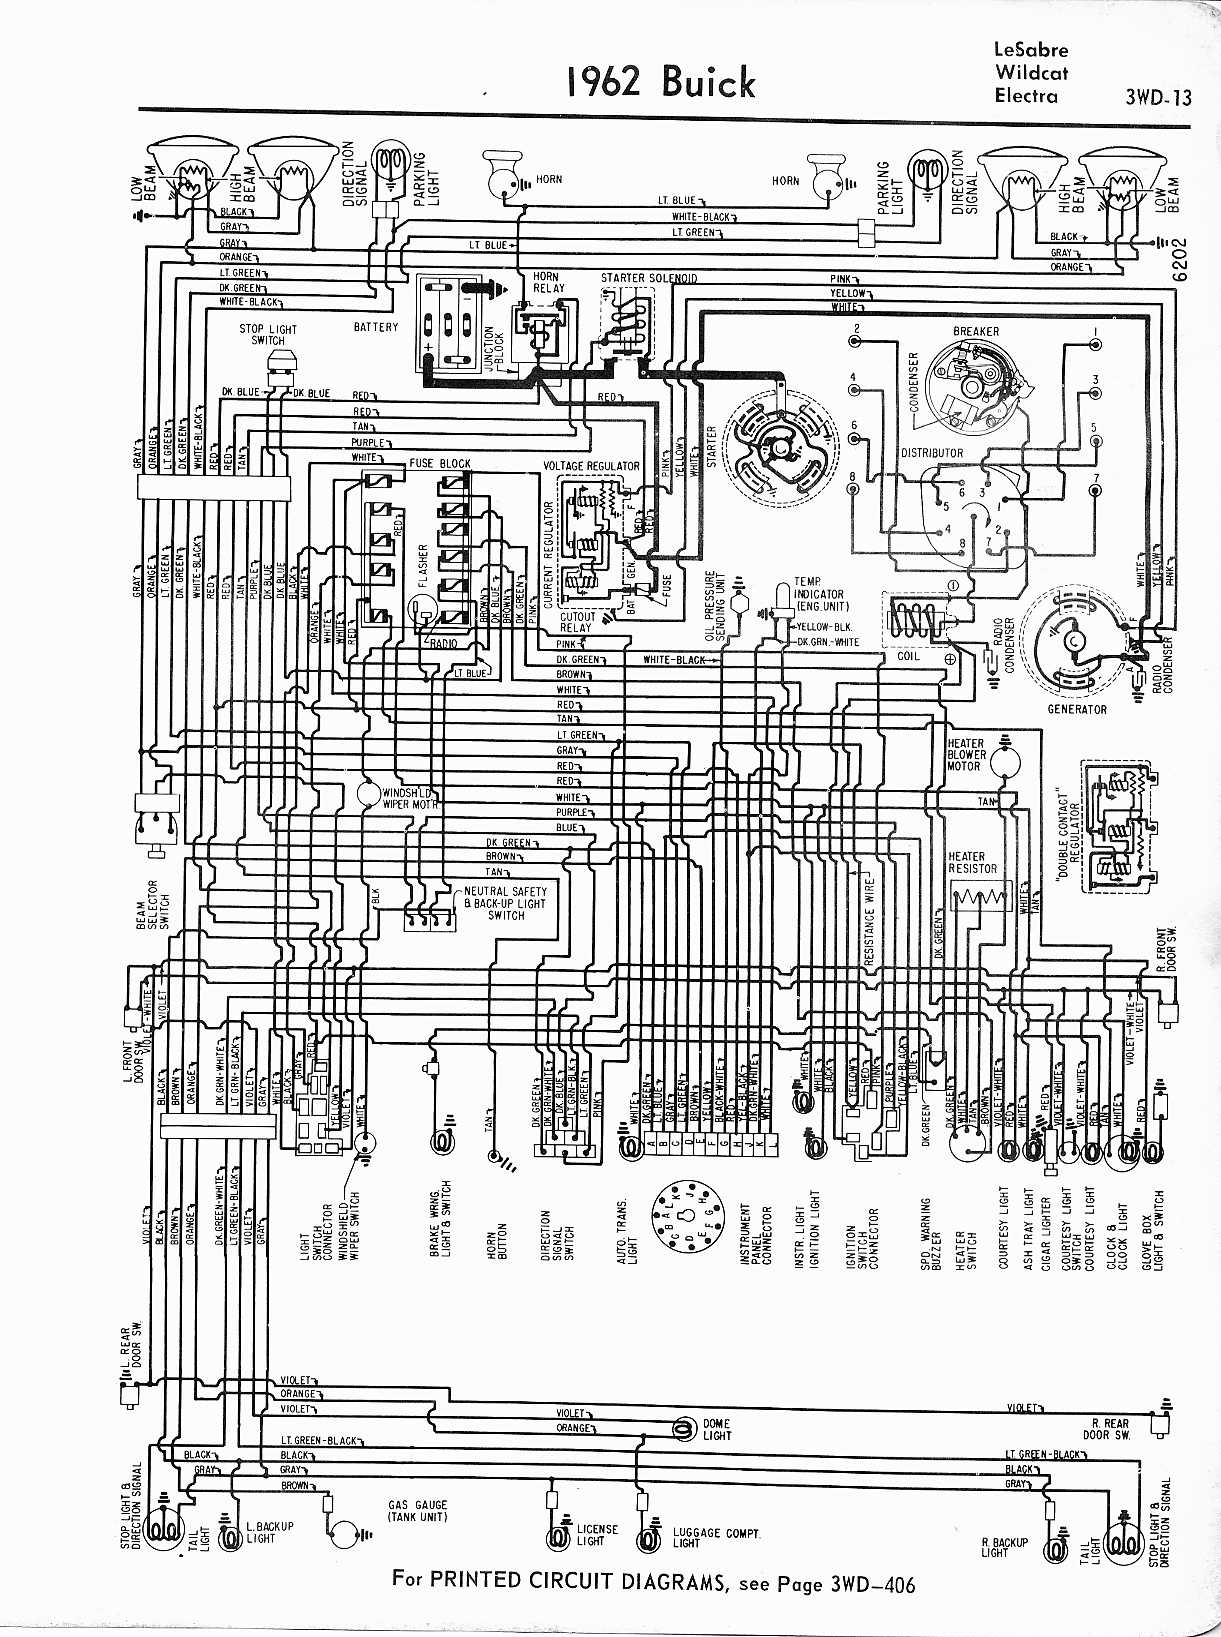 buick park avenue engine wiring diagram buick engine wiring diagram buick 350 engine diagram | wiring library